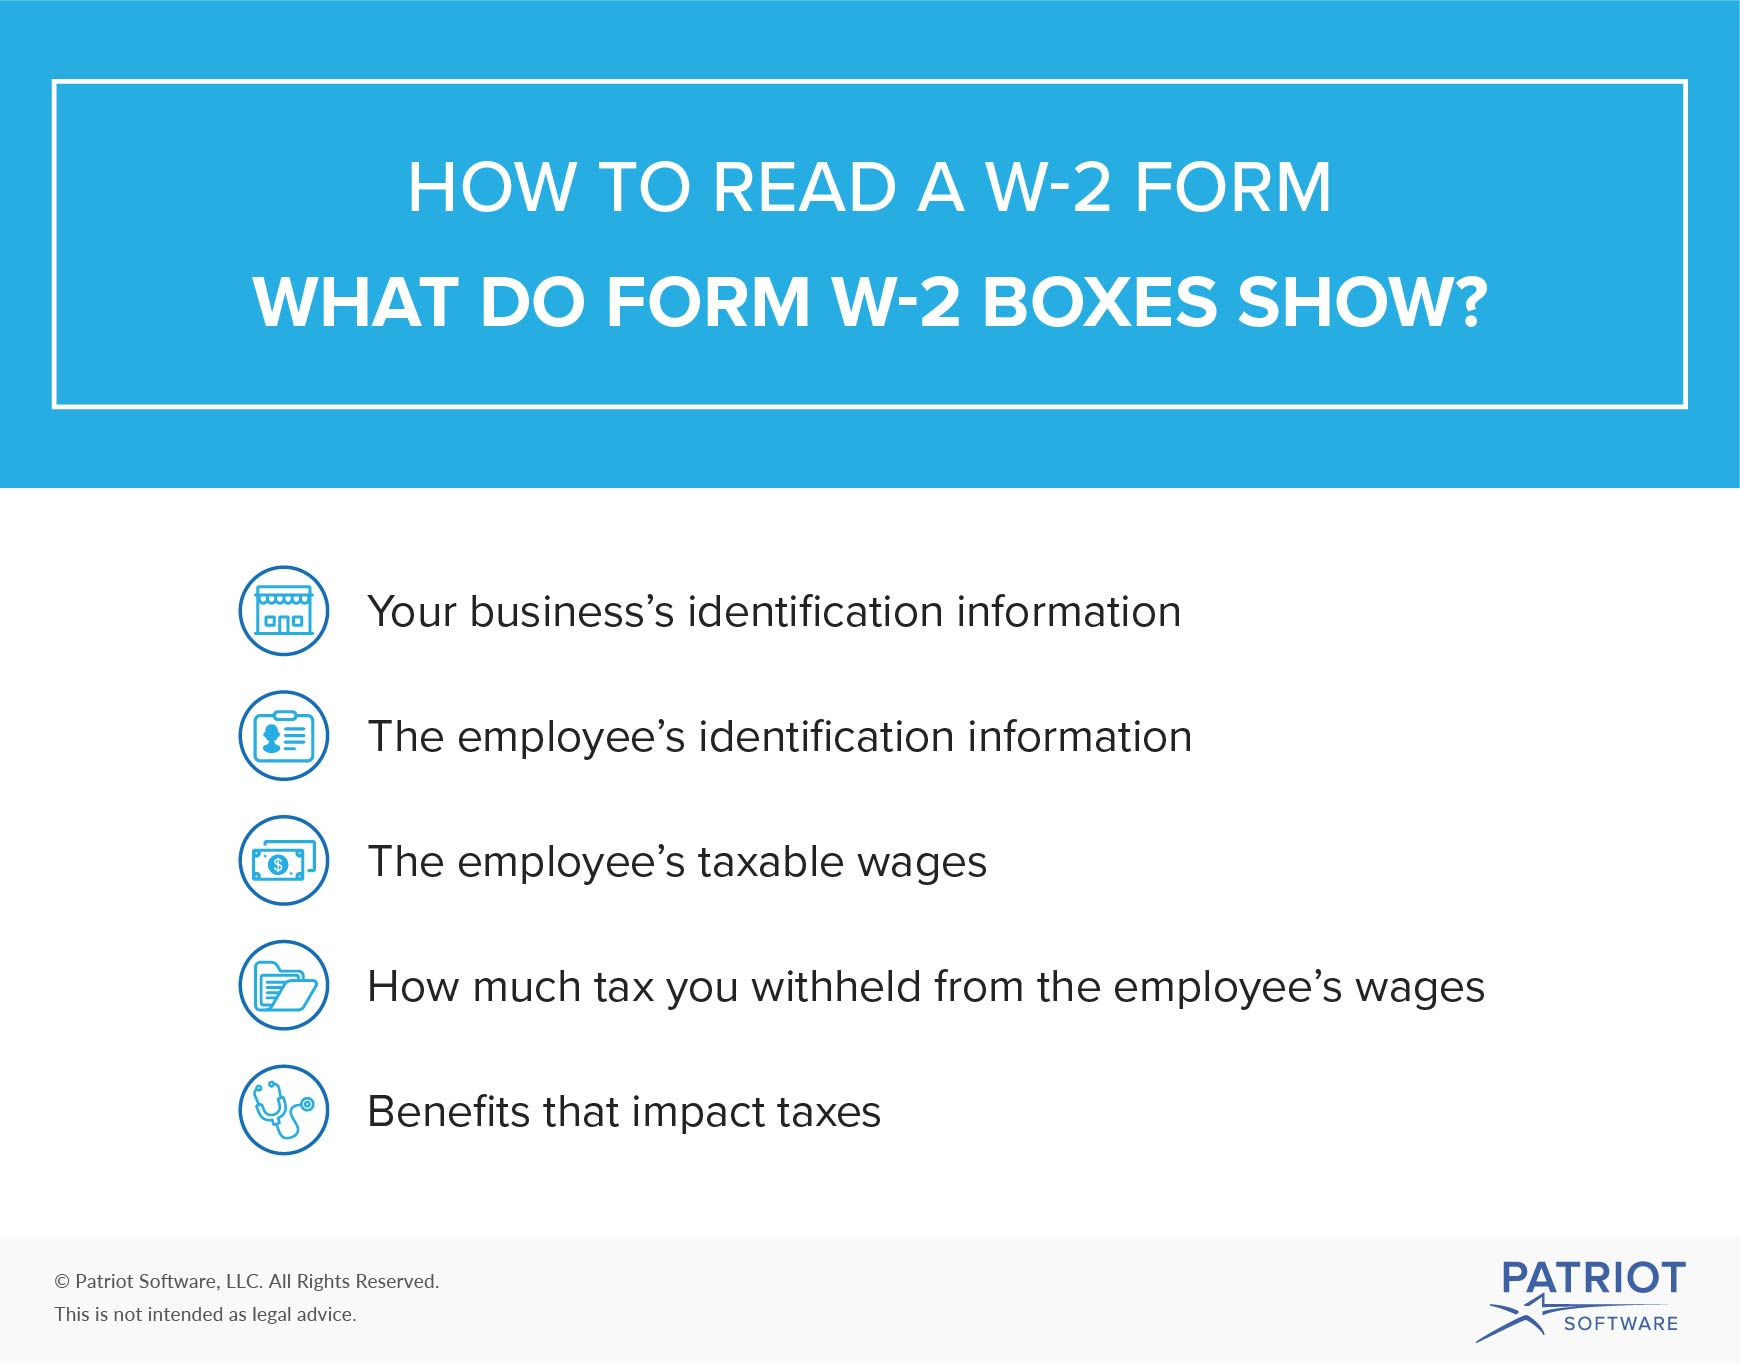 how to read a w-2 form